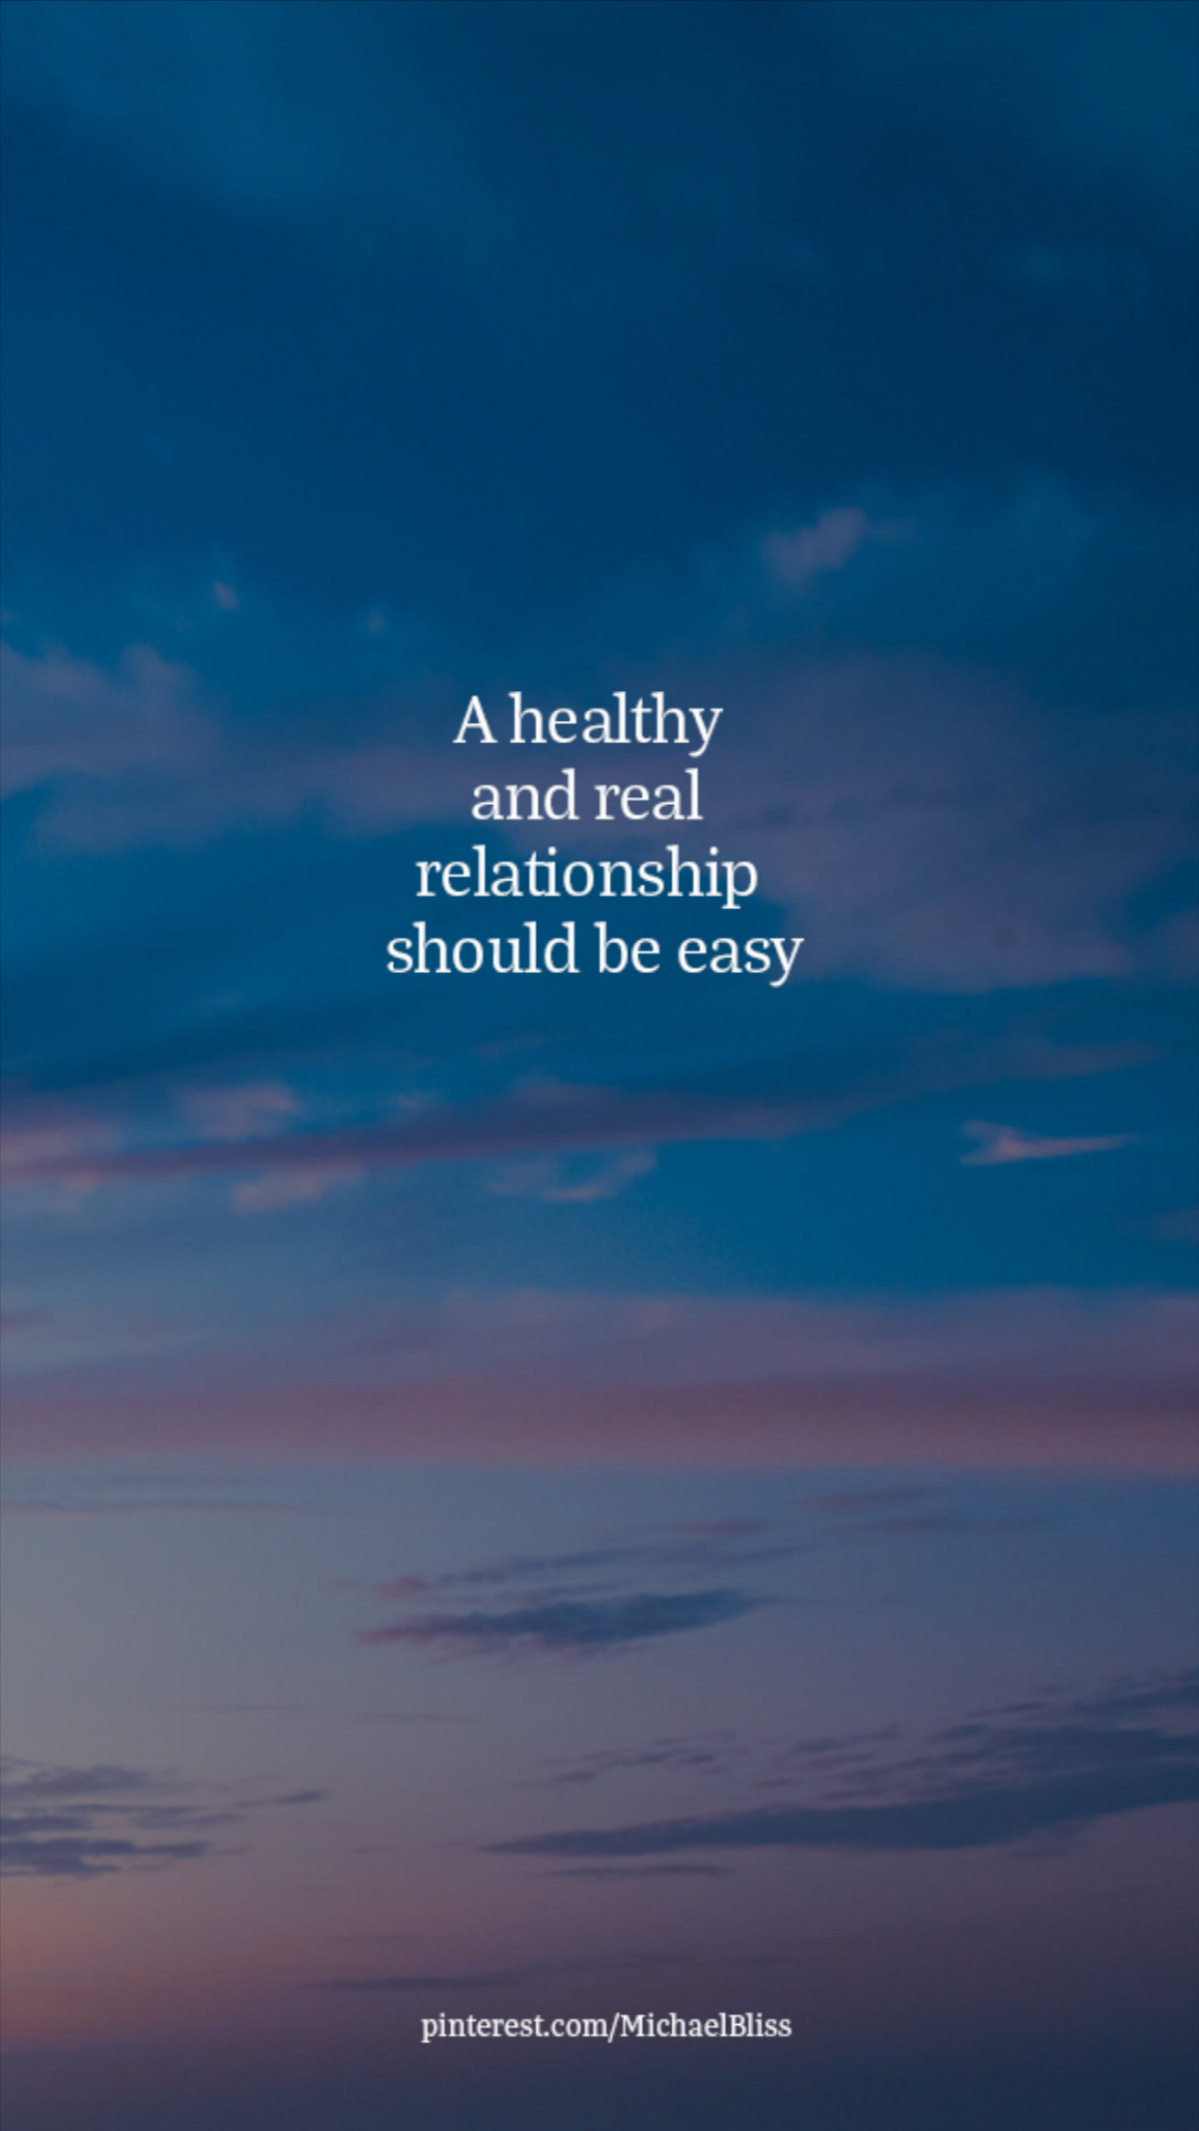 A healthy and real relationship should be easy